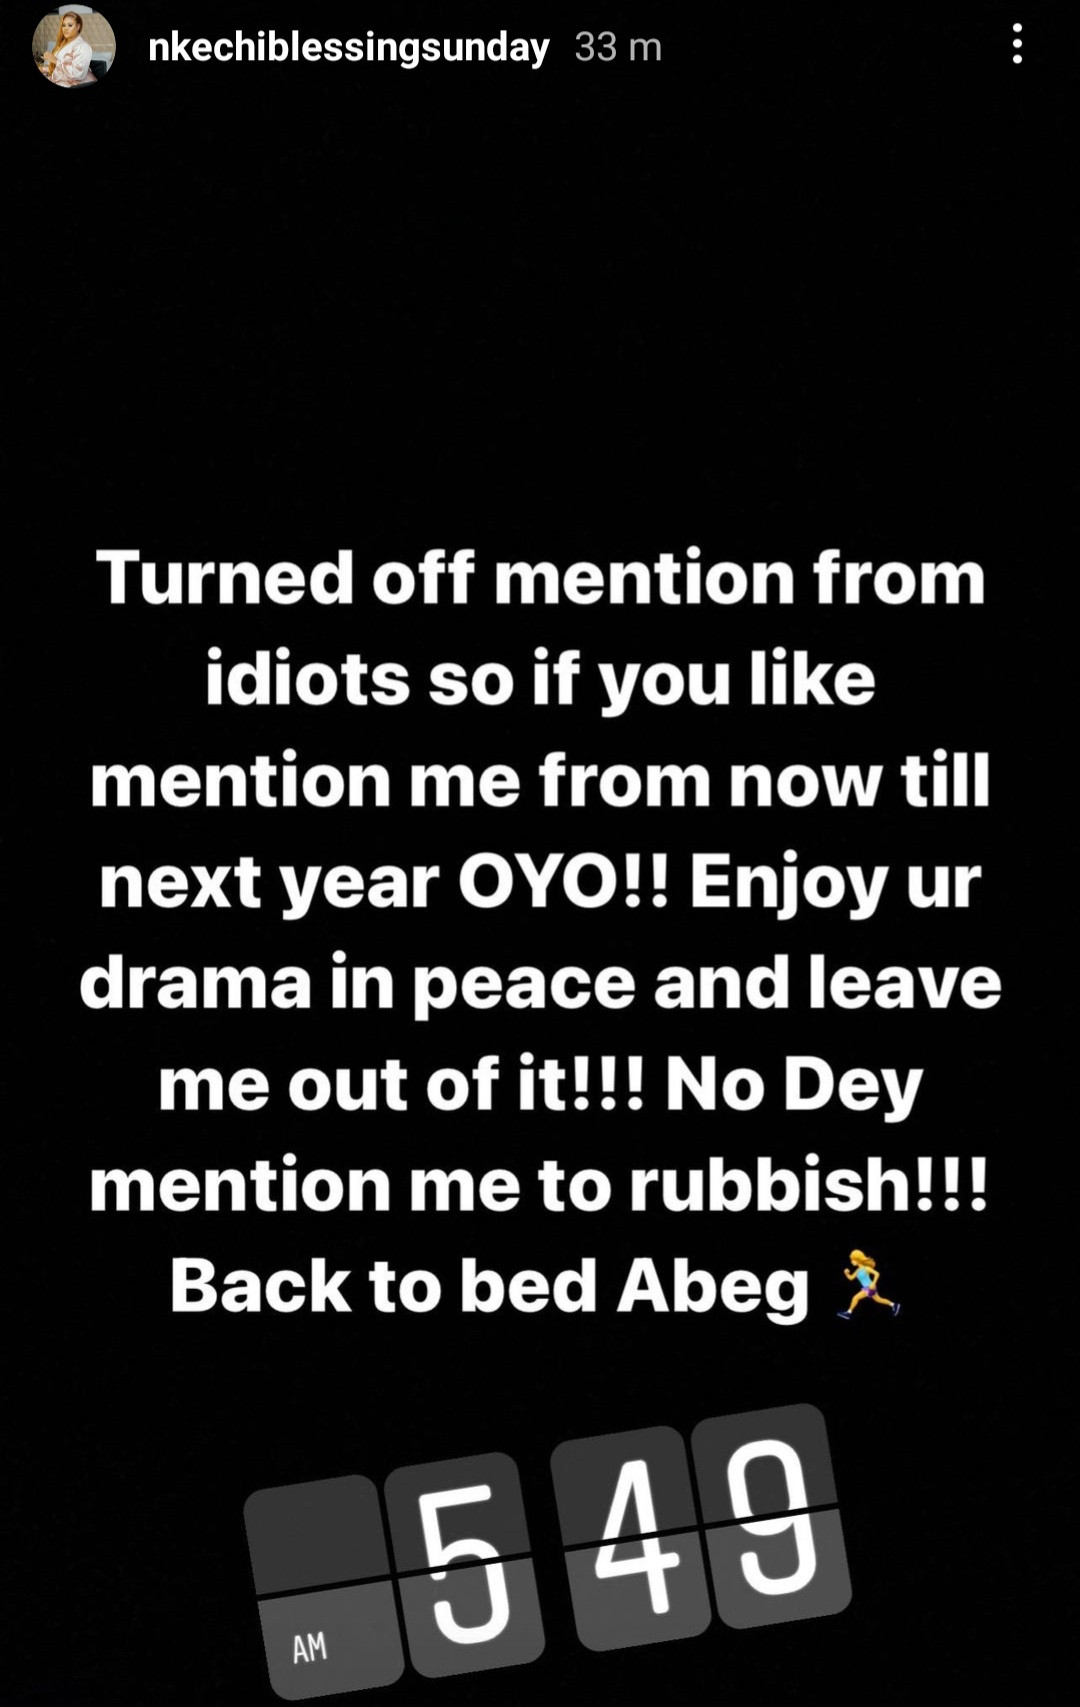 Bobrisky drags Nkechi Blessing Sunday and she responds